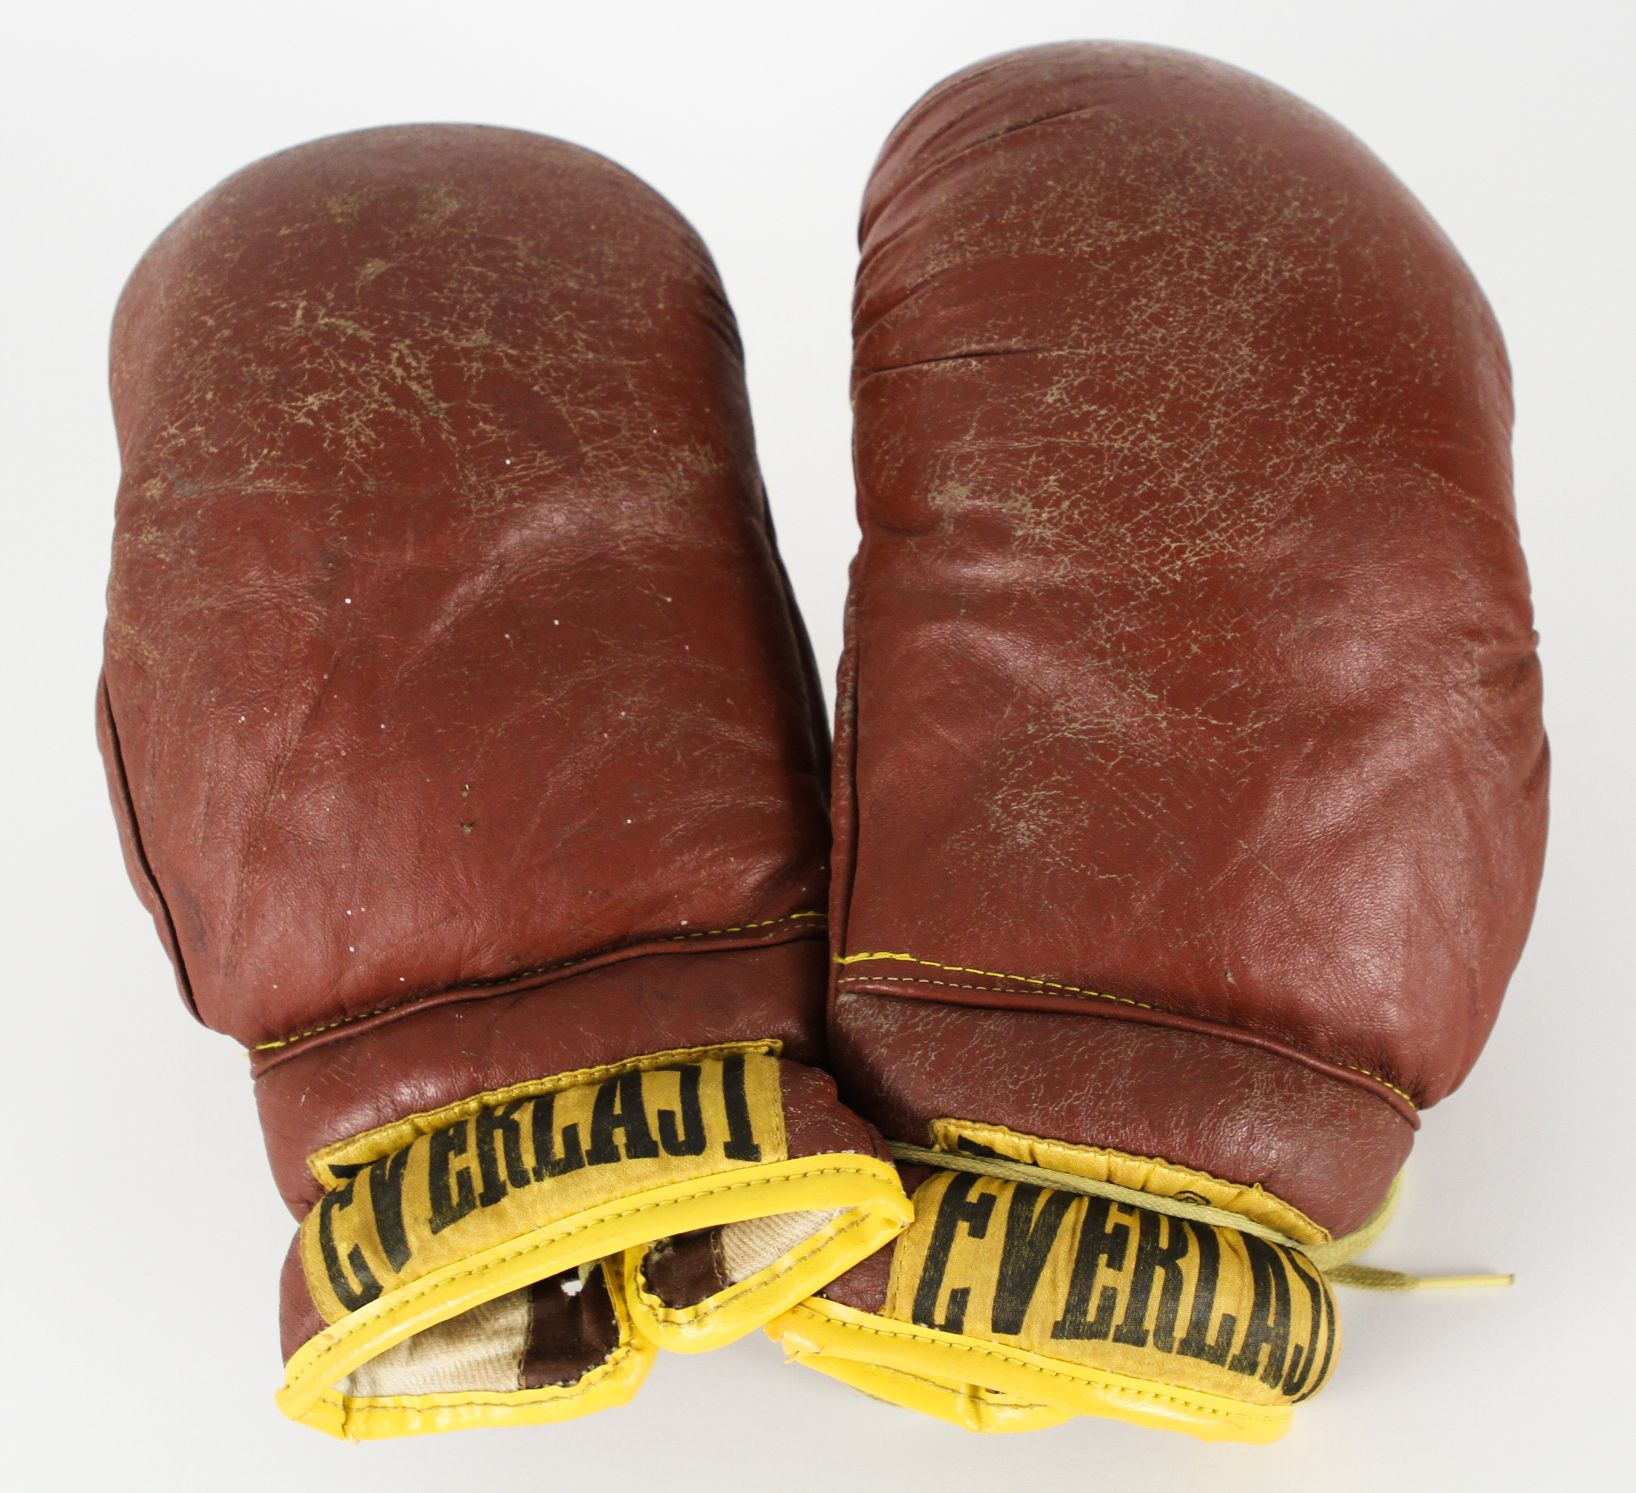 Shiv Naresh Teens Boxing Gloves 12oz: 1970s Vintage Pair Of Everlast Leather Boxing